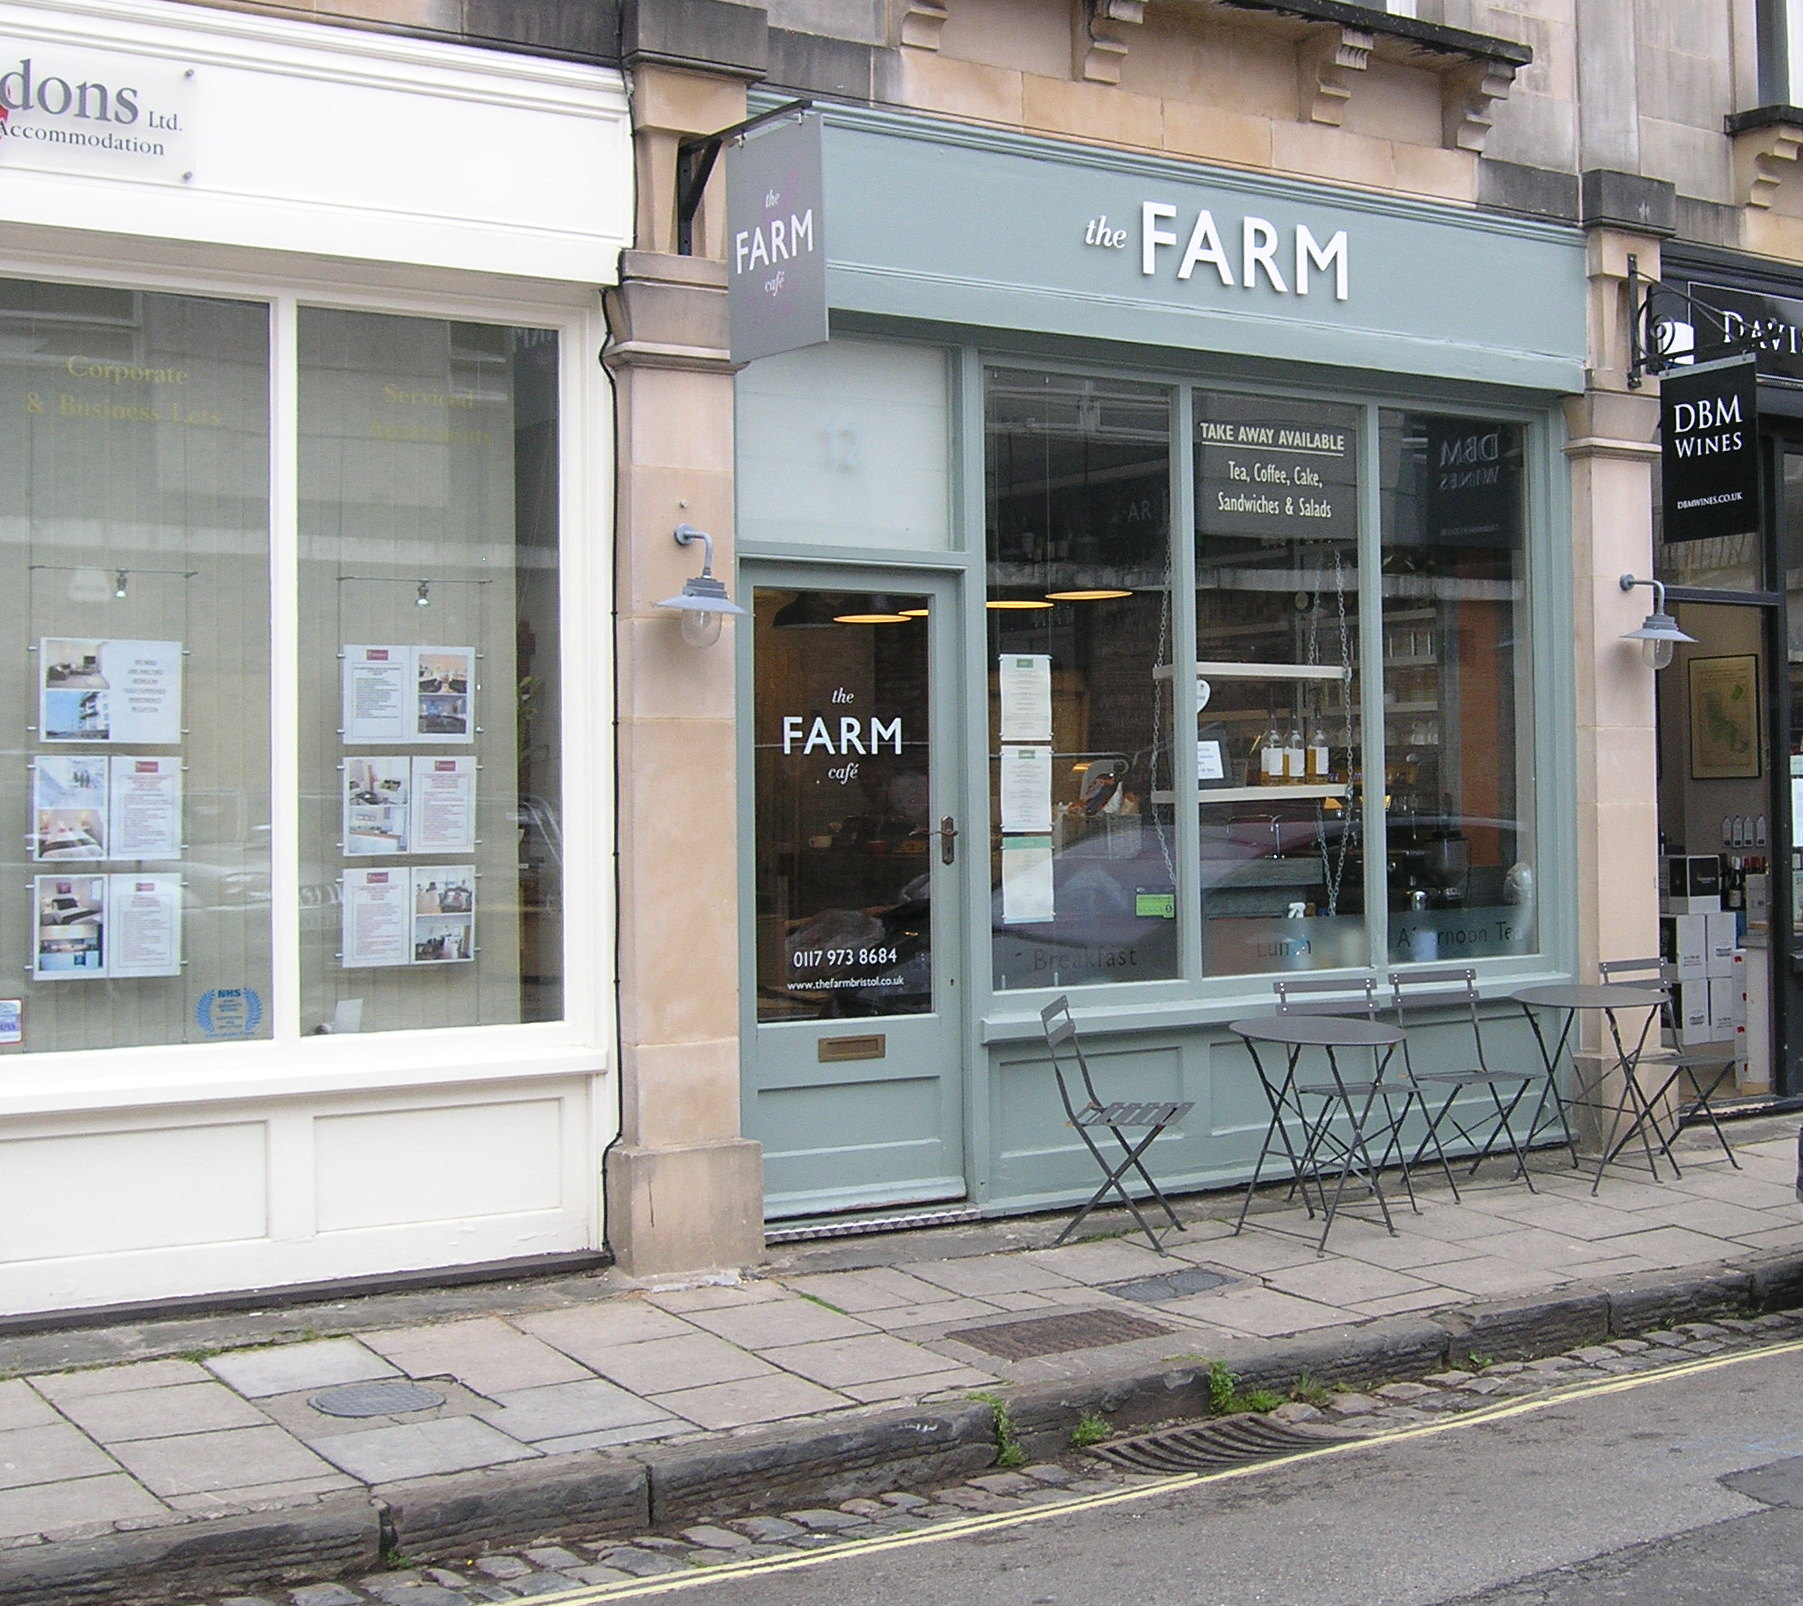 The Farm, Clifton Village, Bristol